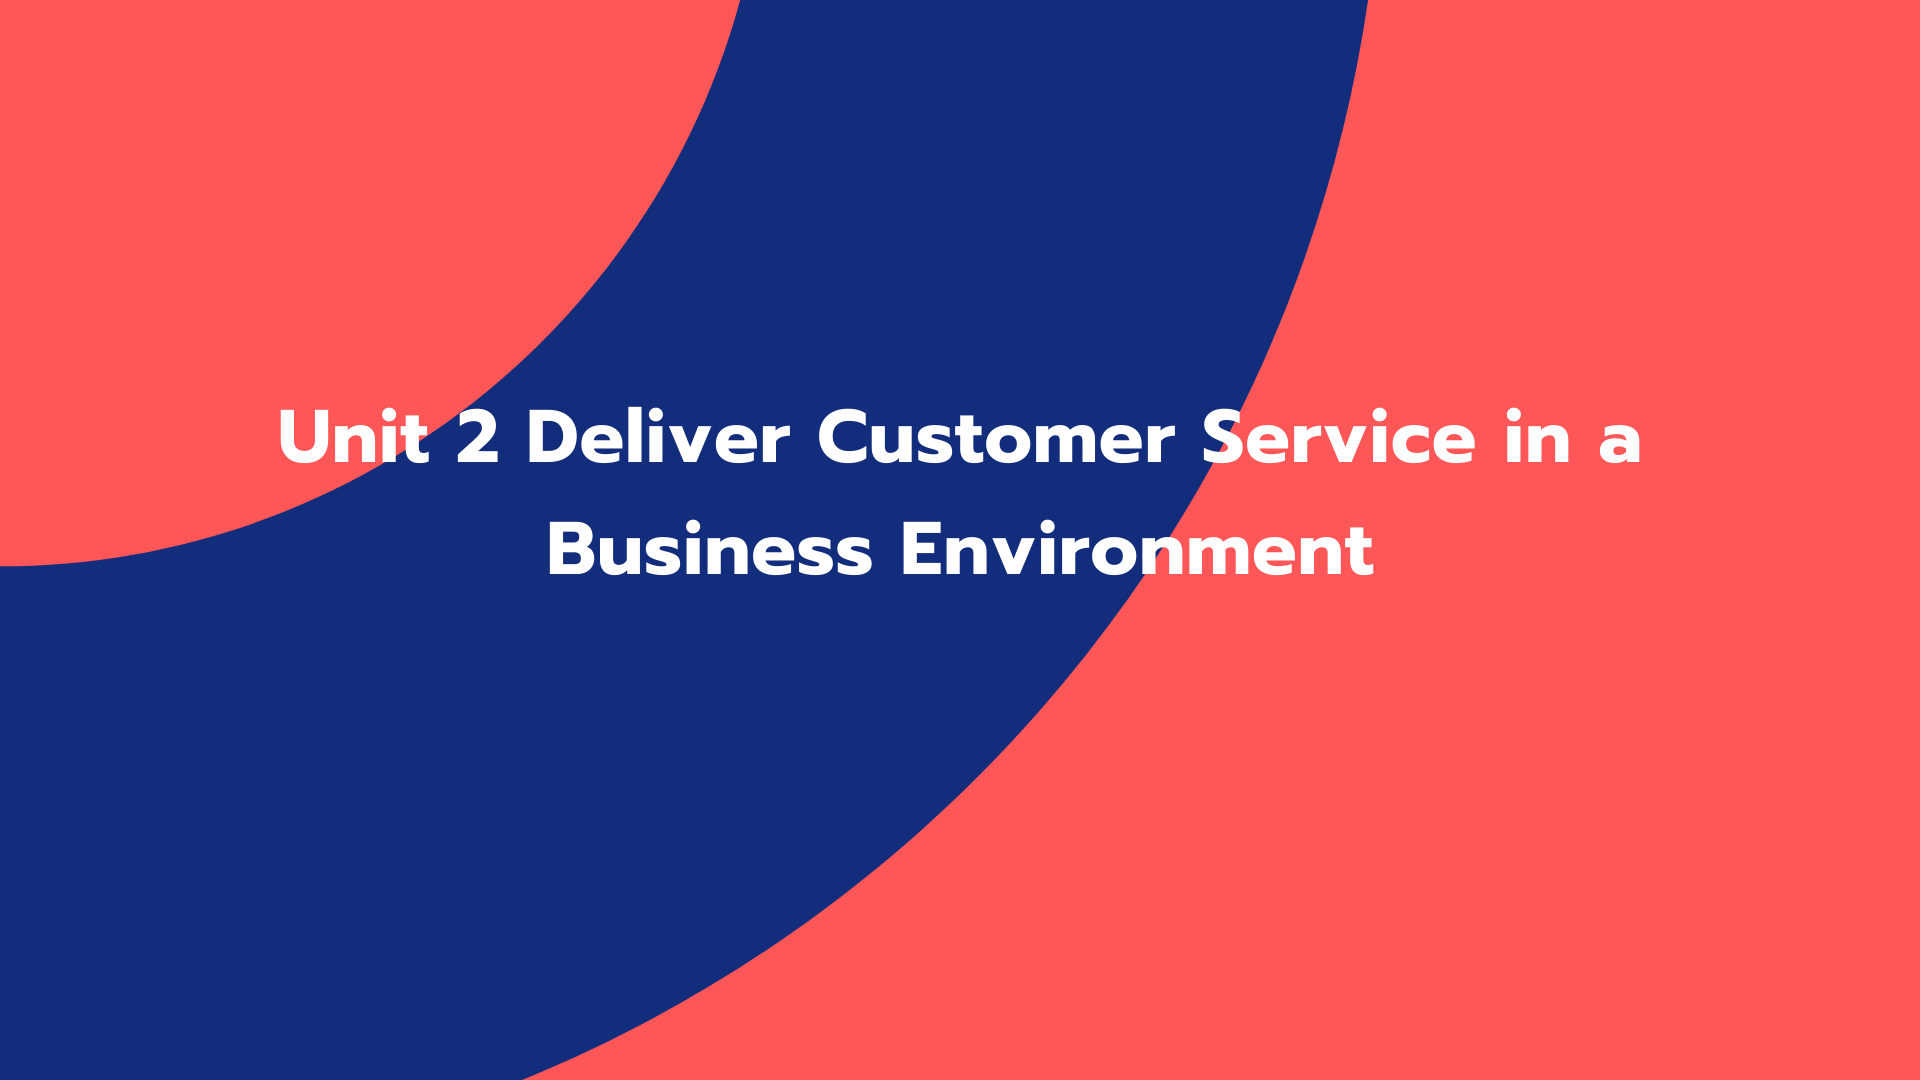 Unit 2 Deliver Customer Service in a Business Environment